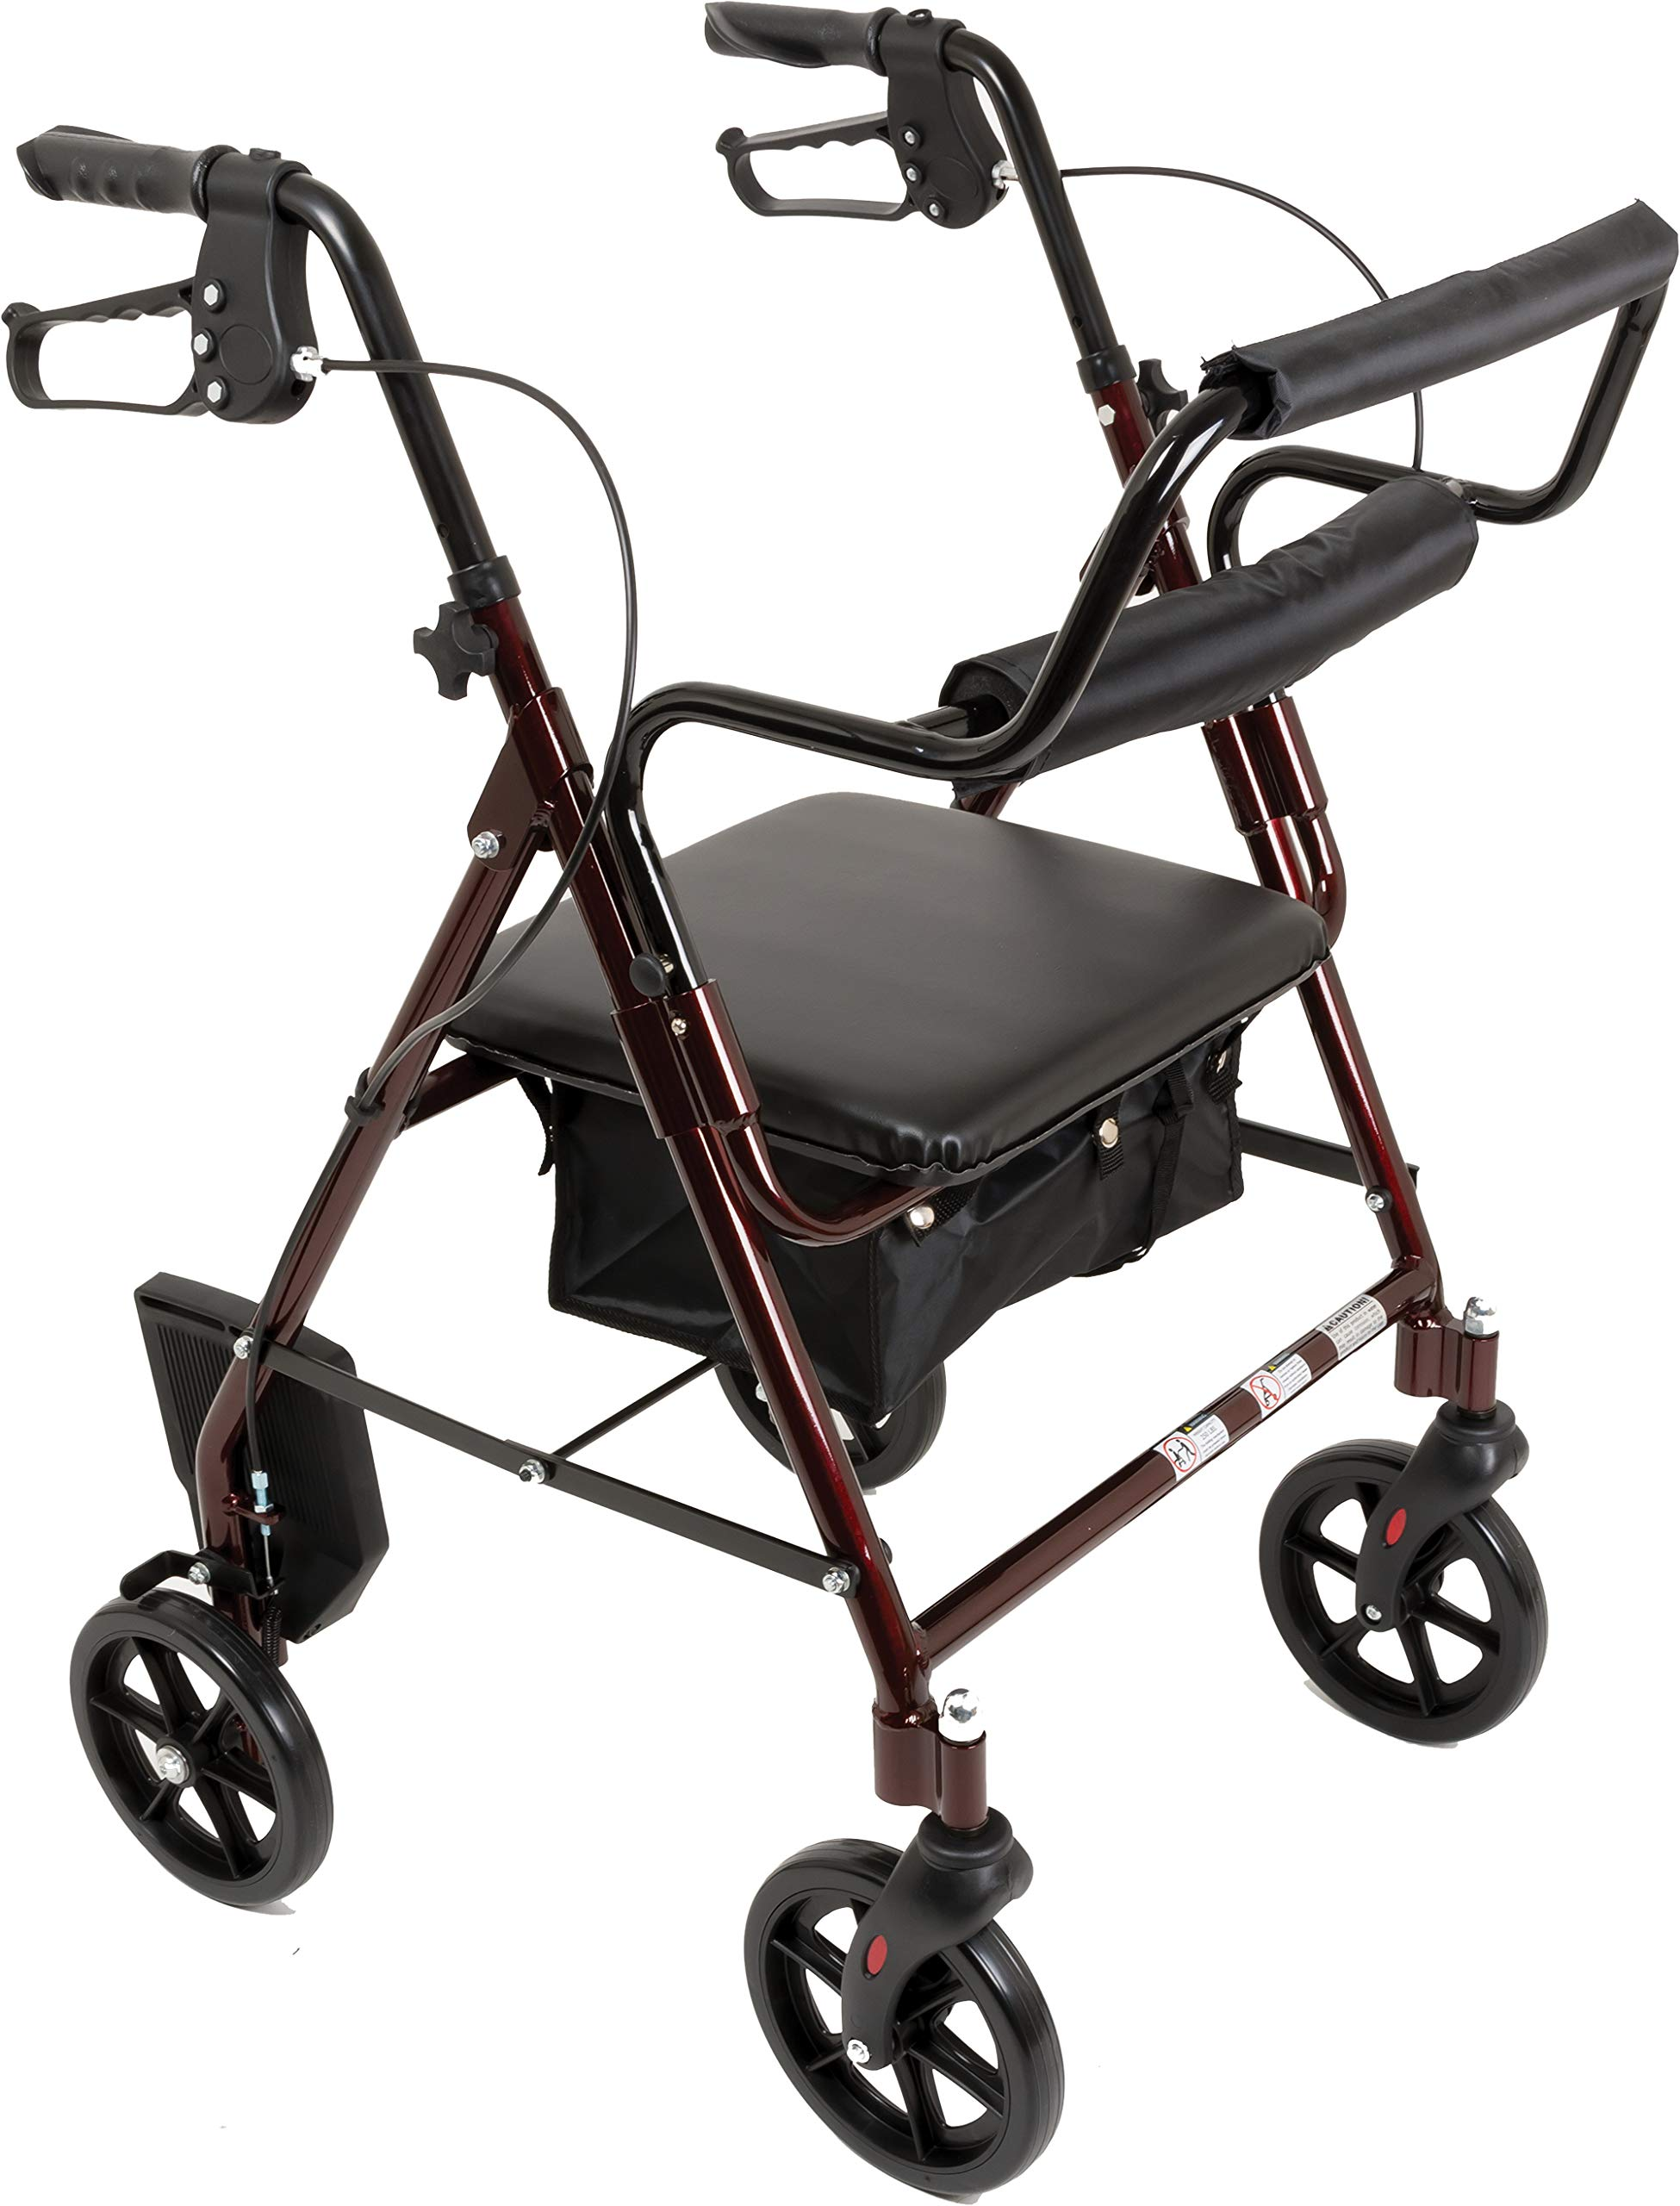 Transport Rollator with Padded Seat, Fold Up Seat, 8 Inch Wheels, Weight Capacity: 250 Pounds (Burgundy) by ProBasic